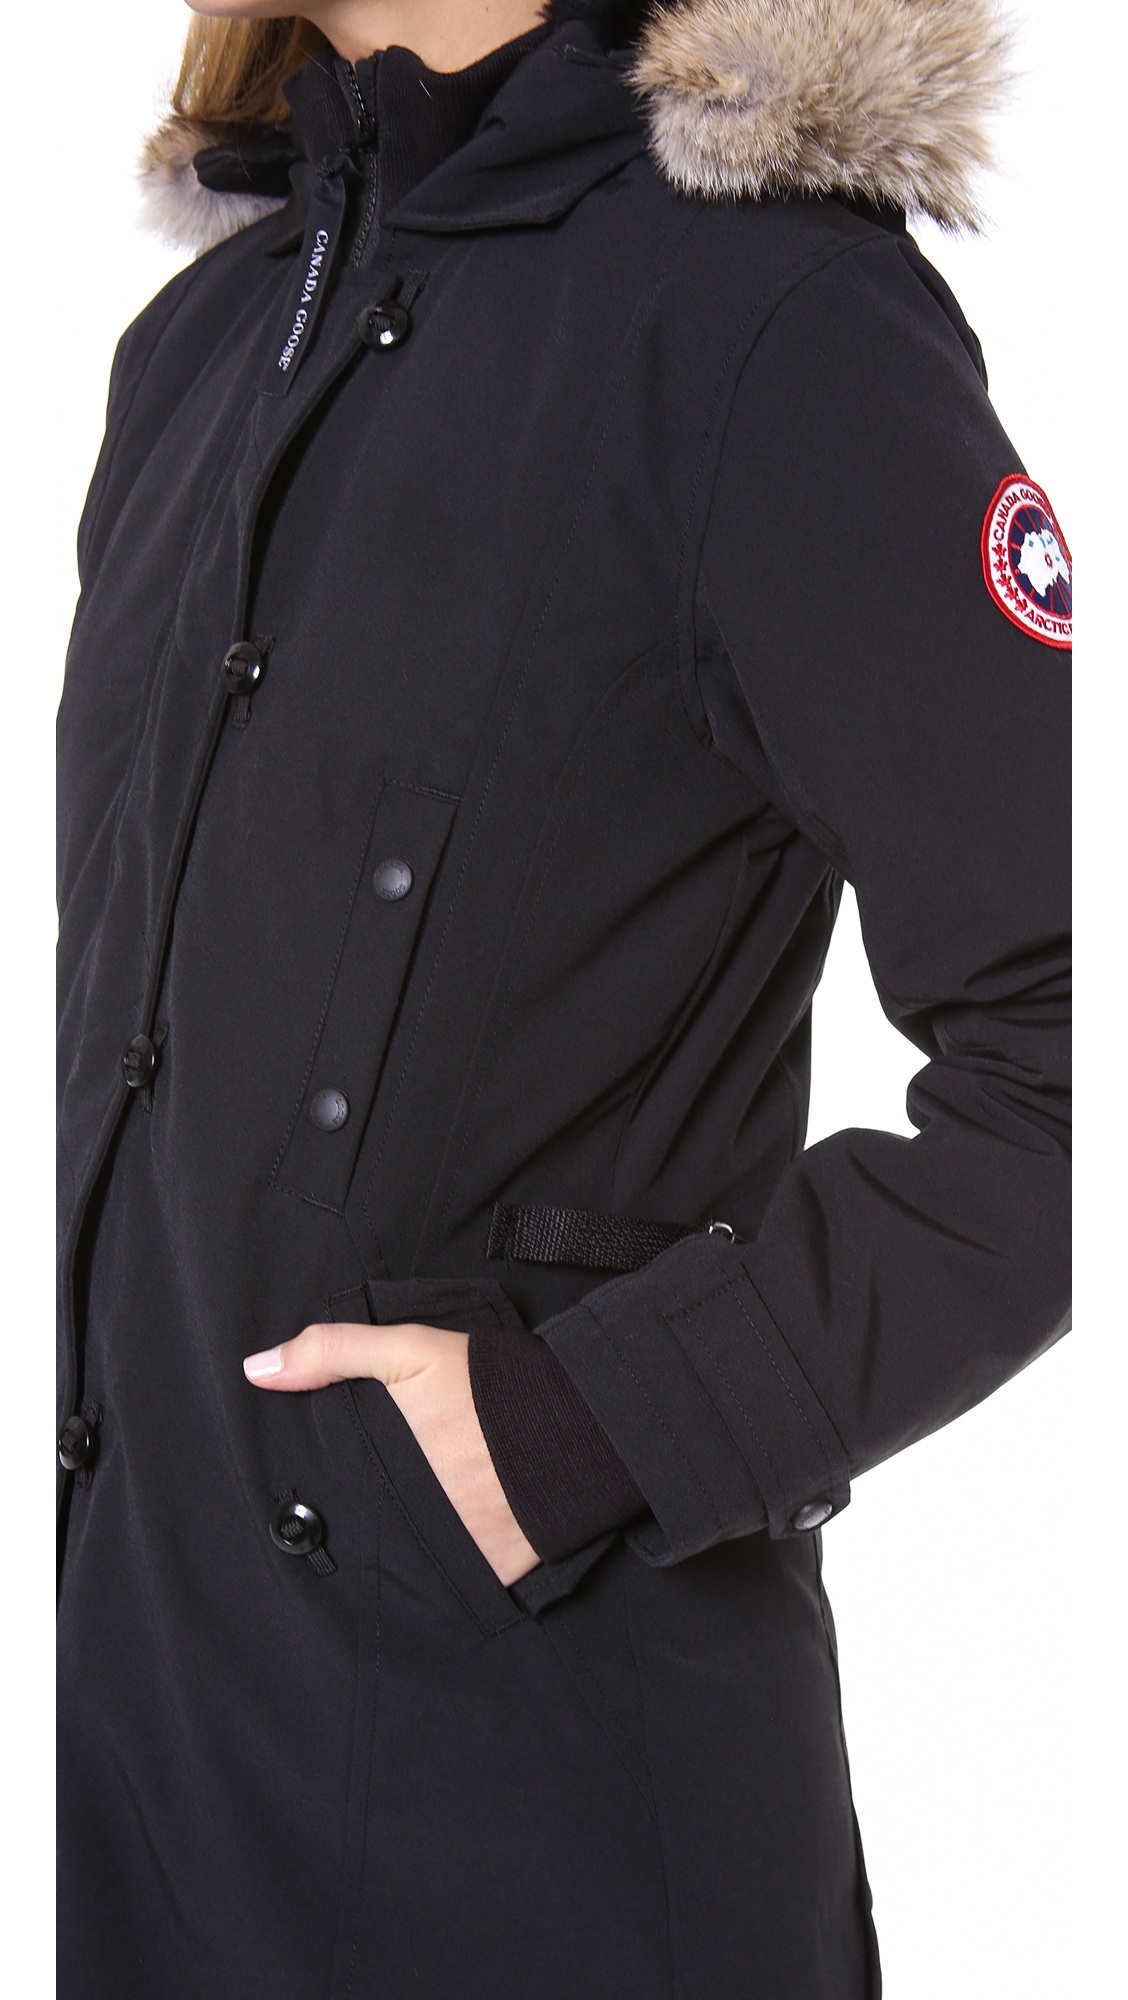 Canada Goose: Is a $900 winter jacket really worth it ...